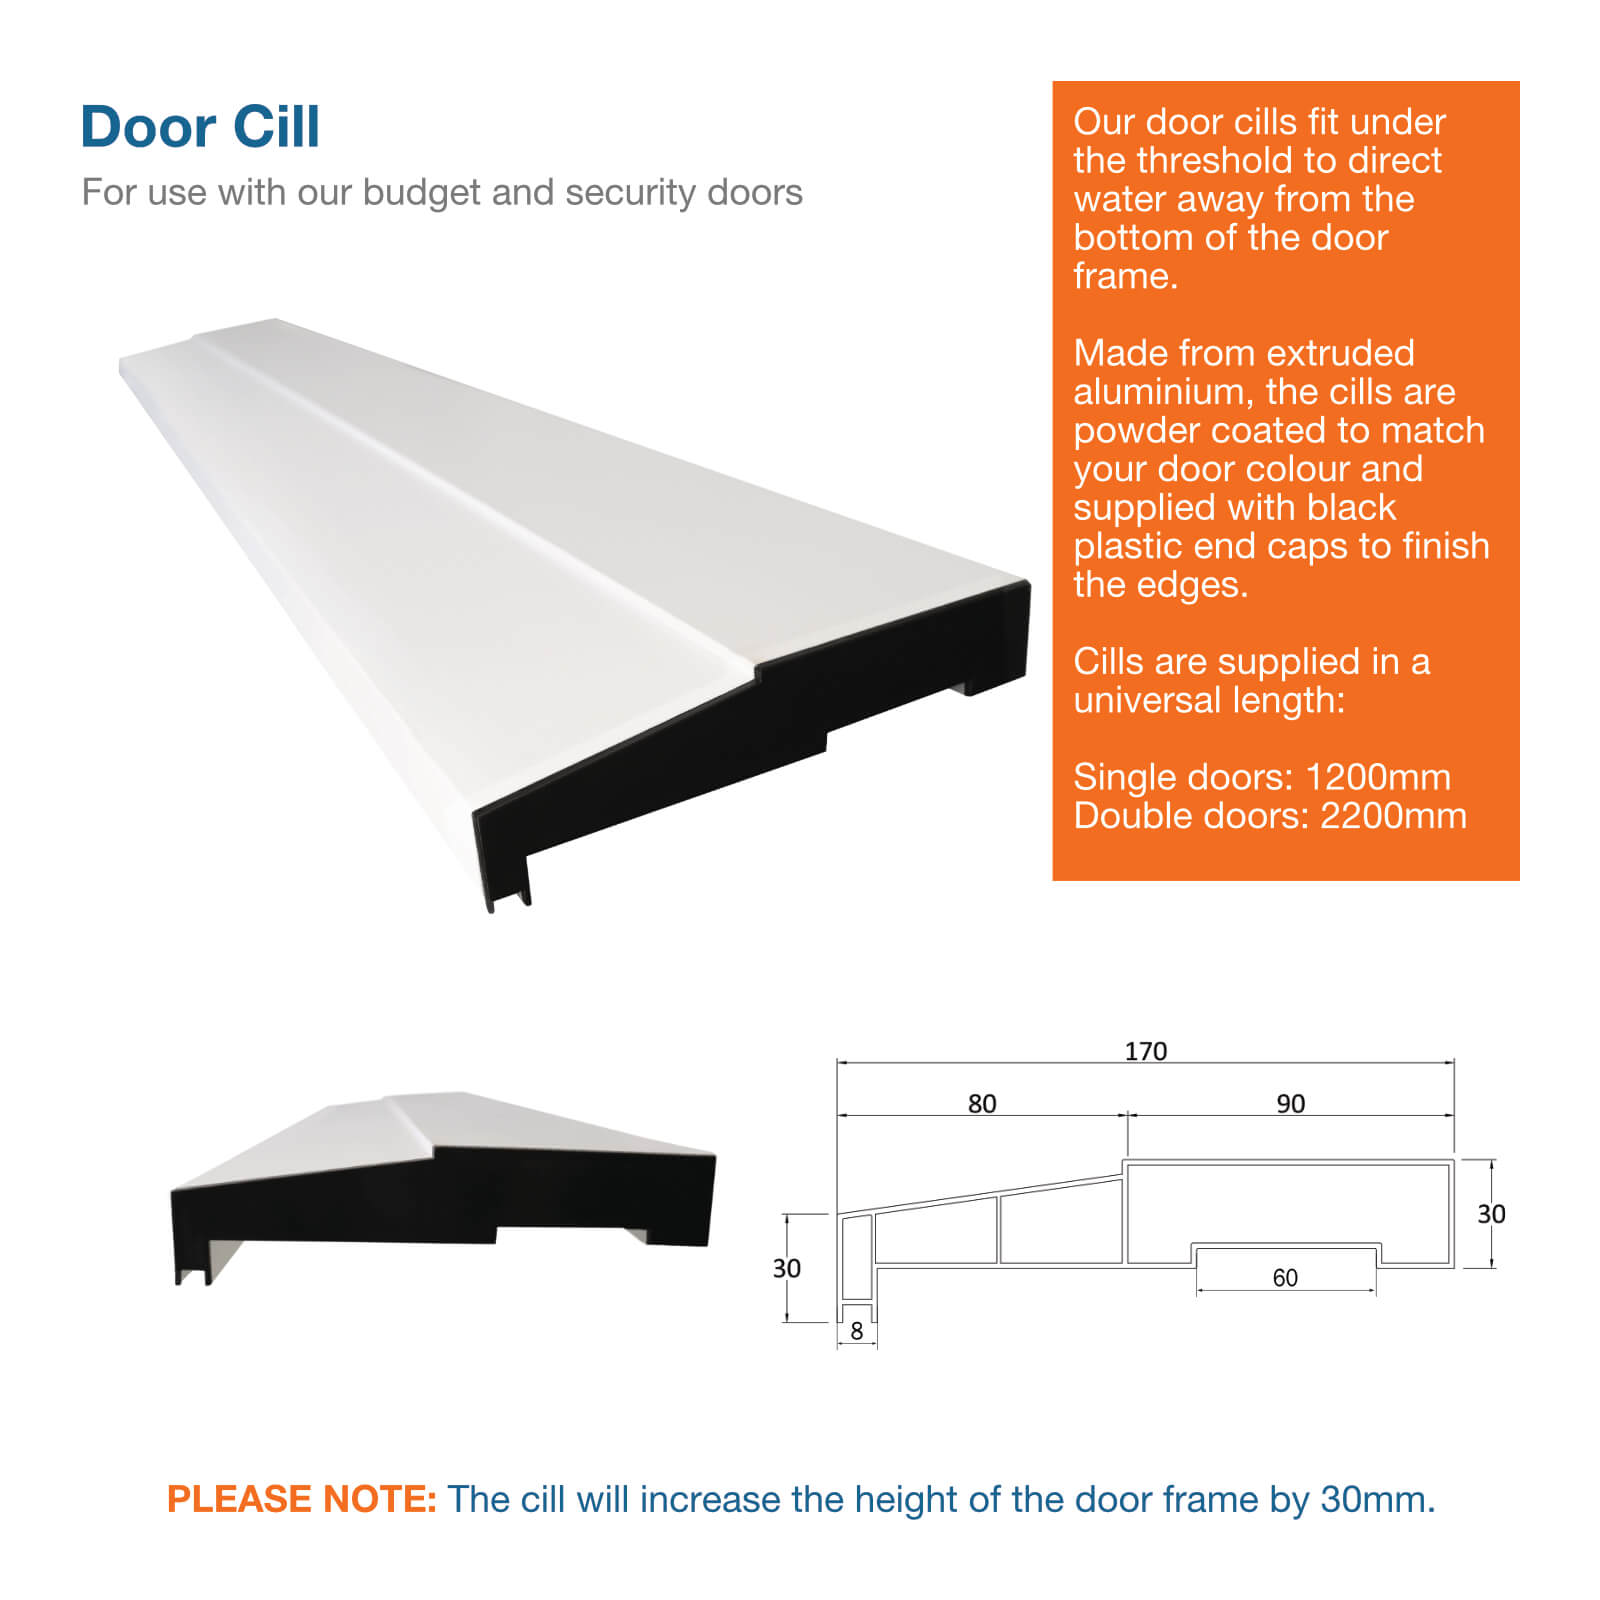 Image showing elevations and dimensions for a steel door cill